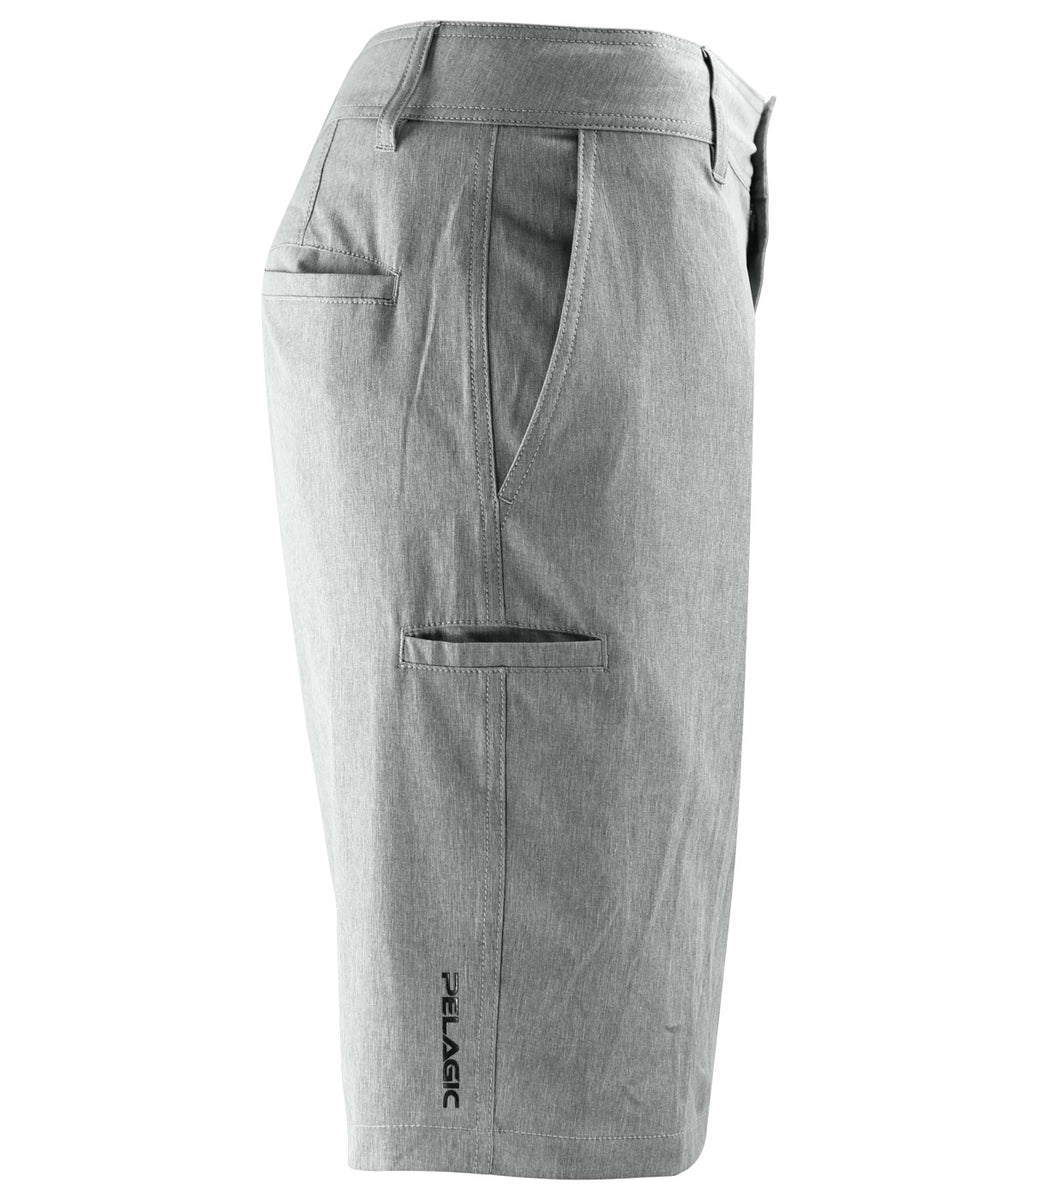 Deep Sea Hybrid Fishing Shorts Big Image - 4